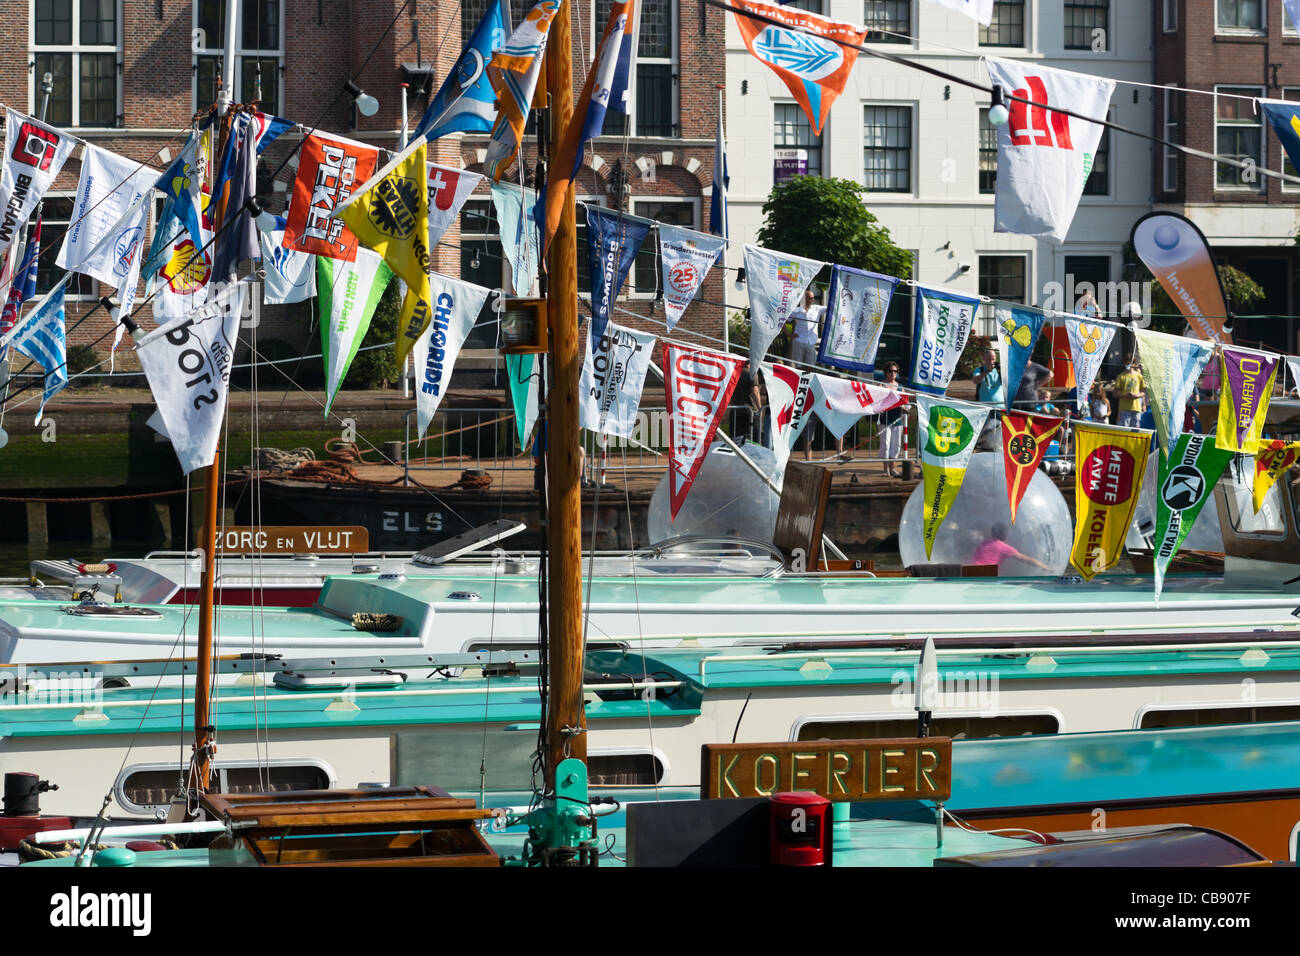 Ship decks and flags in Maassluis during the Furieade in 2011 Stock Photo